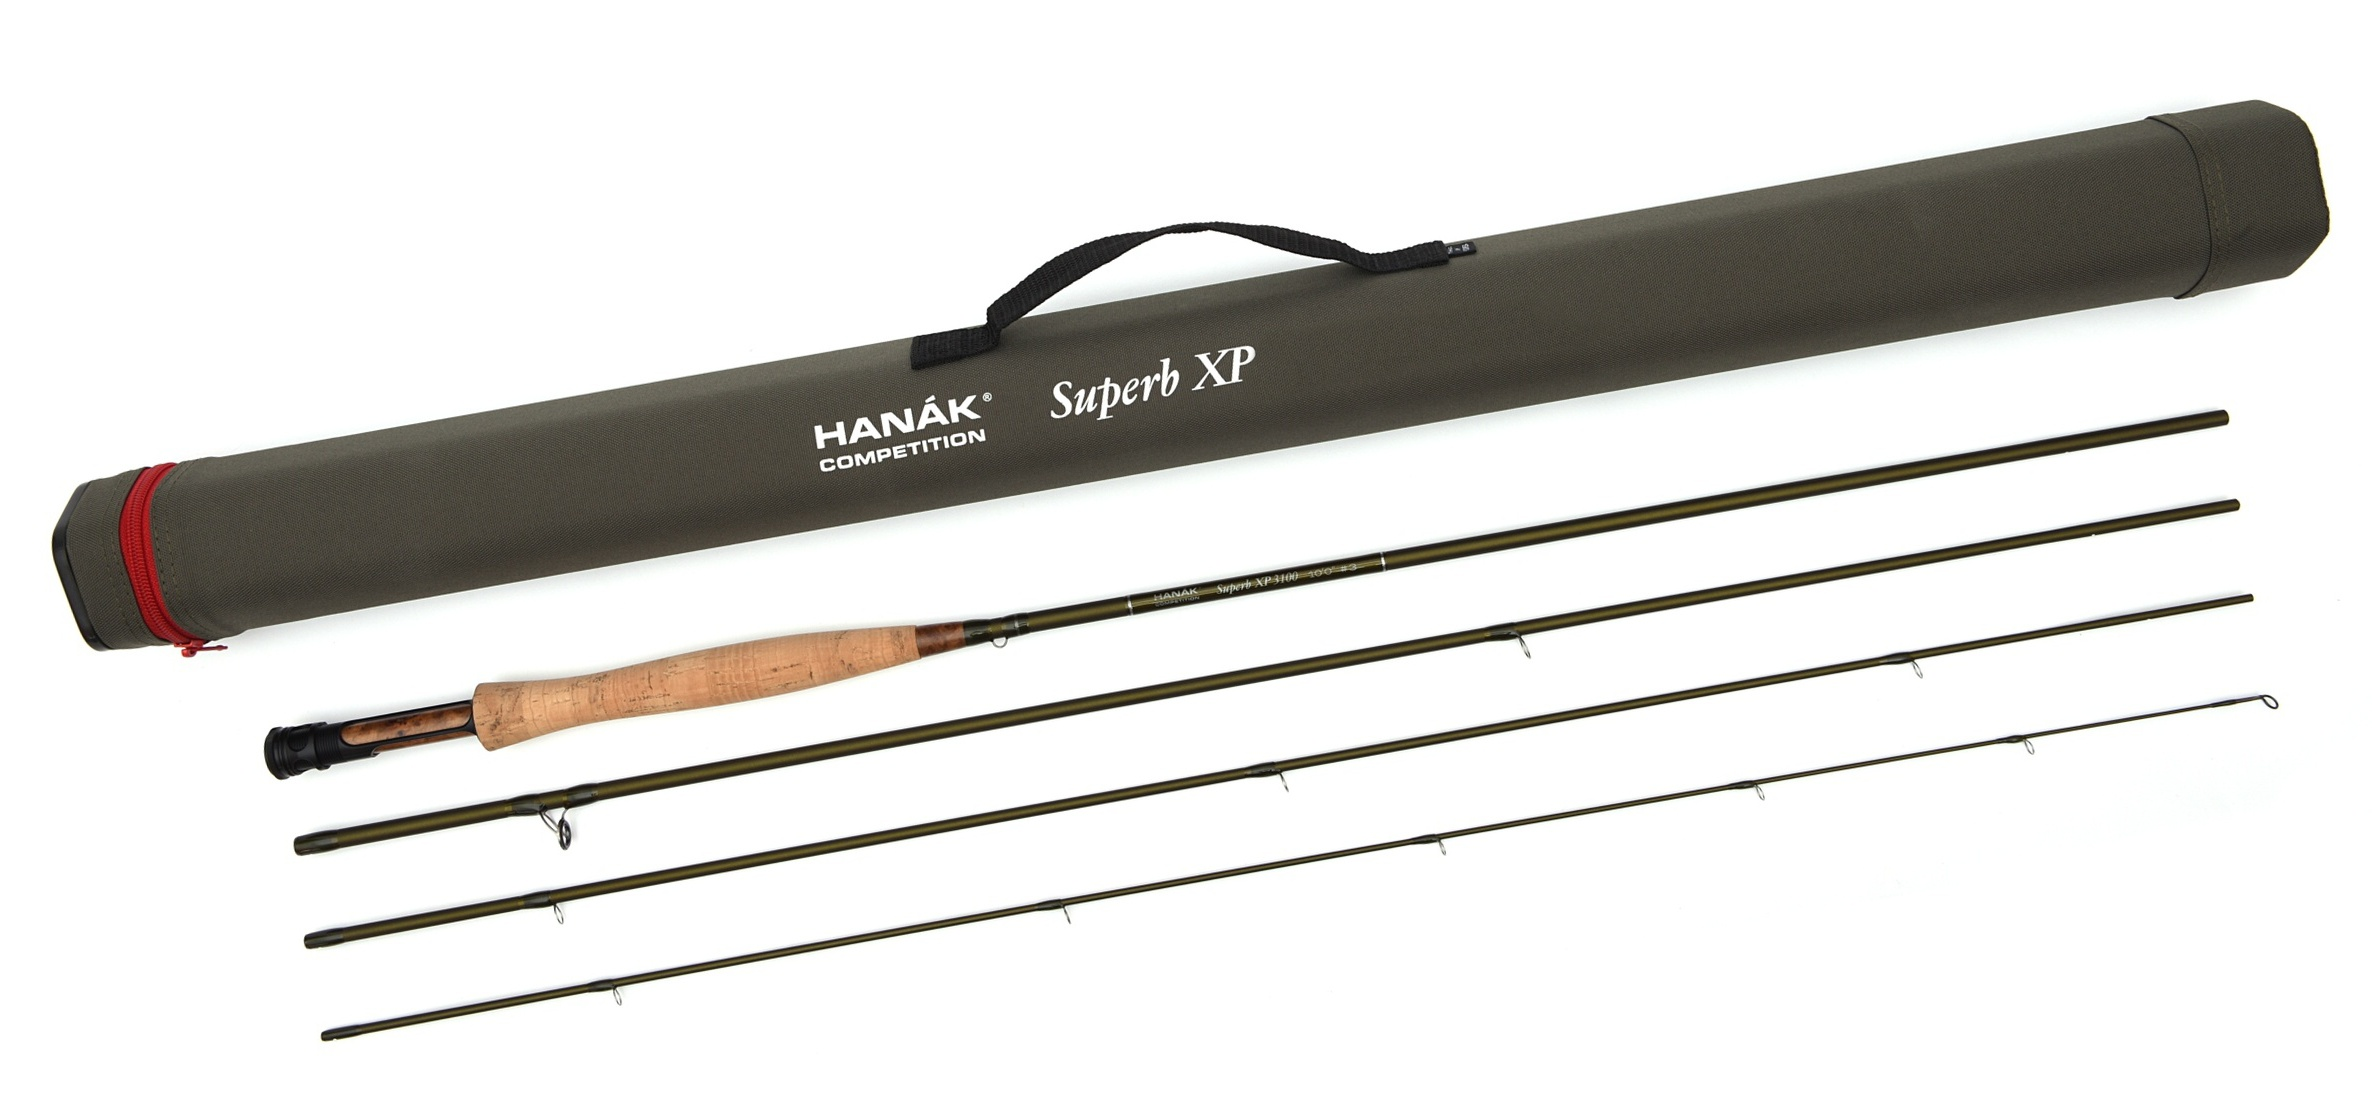 Fly Rod Hanak Competition Superb XP 290-4